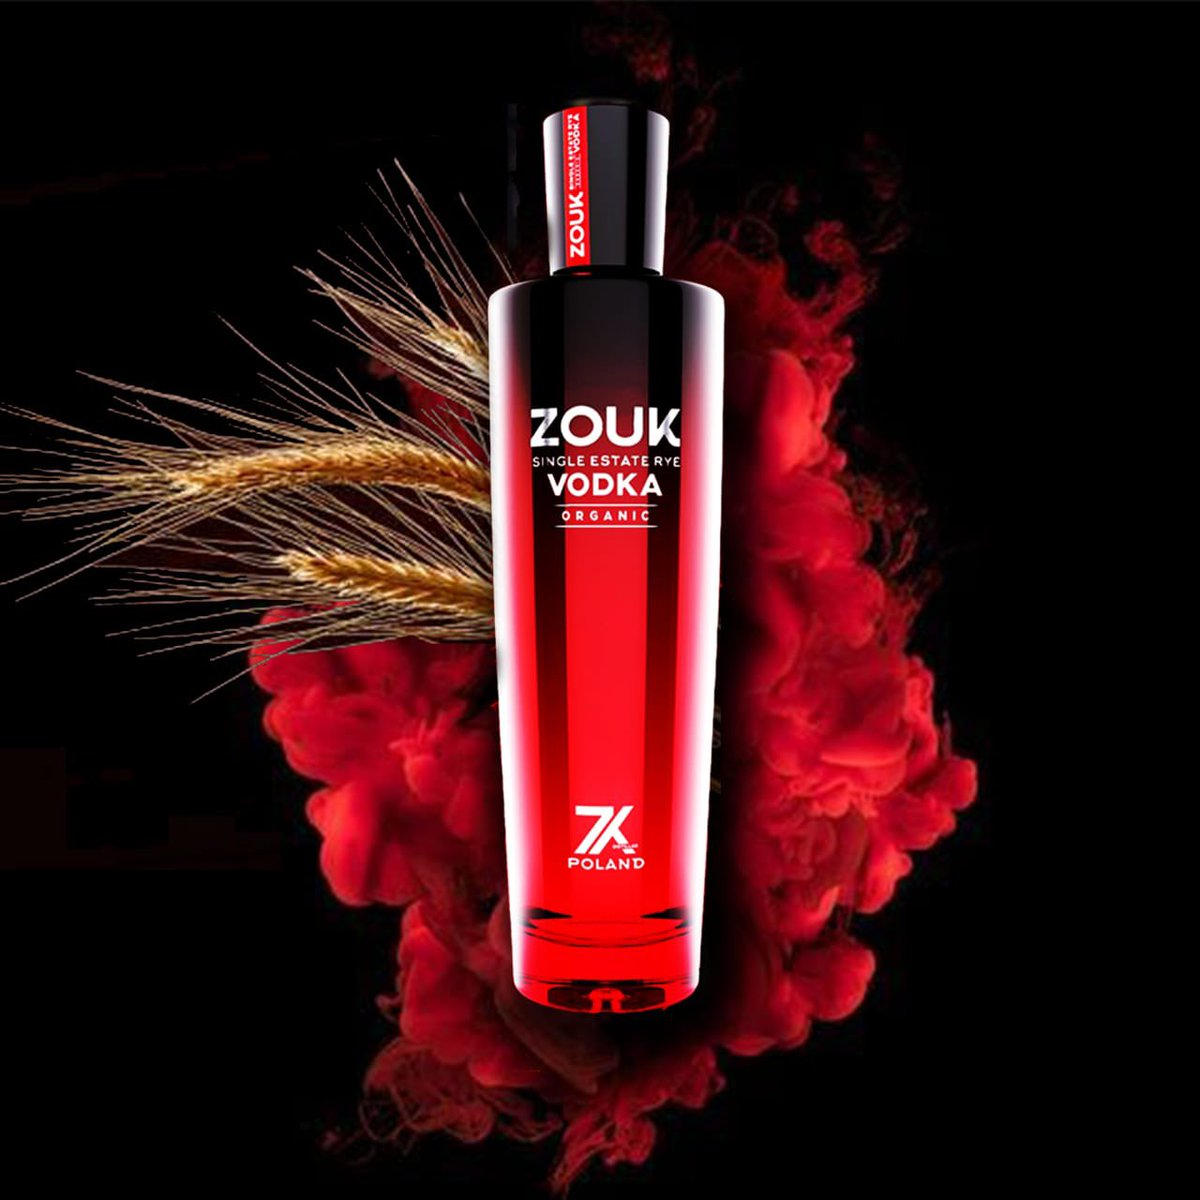 Any plans for Today?  If not then make one to enjoy with a glass of #Zouk #Vodka  #welcome2021 #byeto2020✌️ #bestvodka #vodka🍸 #vodka #welcomejanuary #newyear #vodkaedition